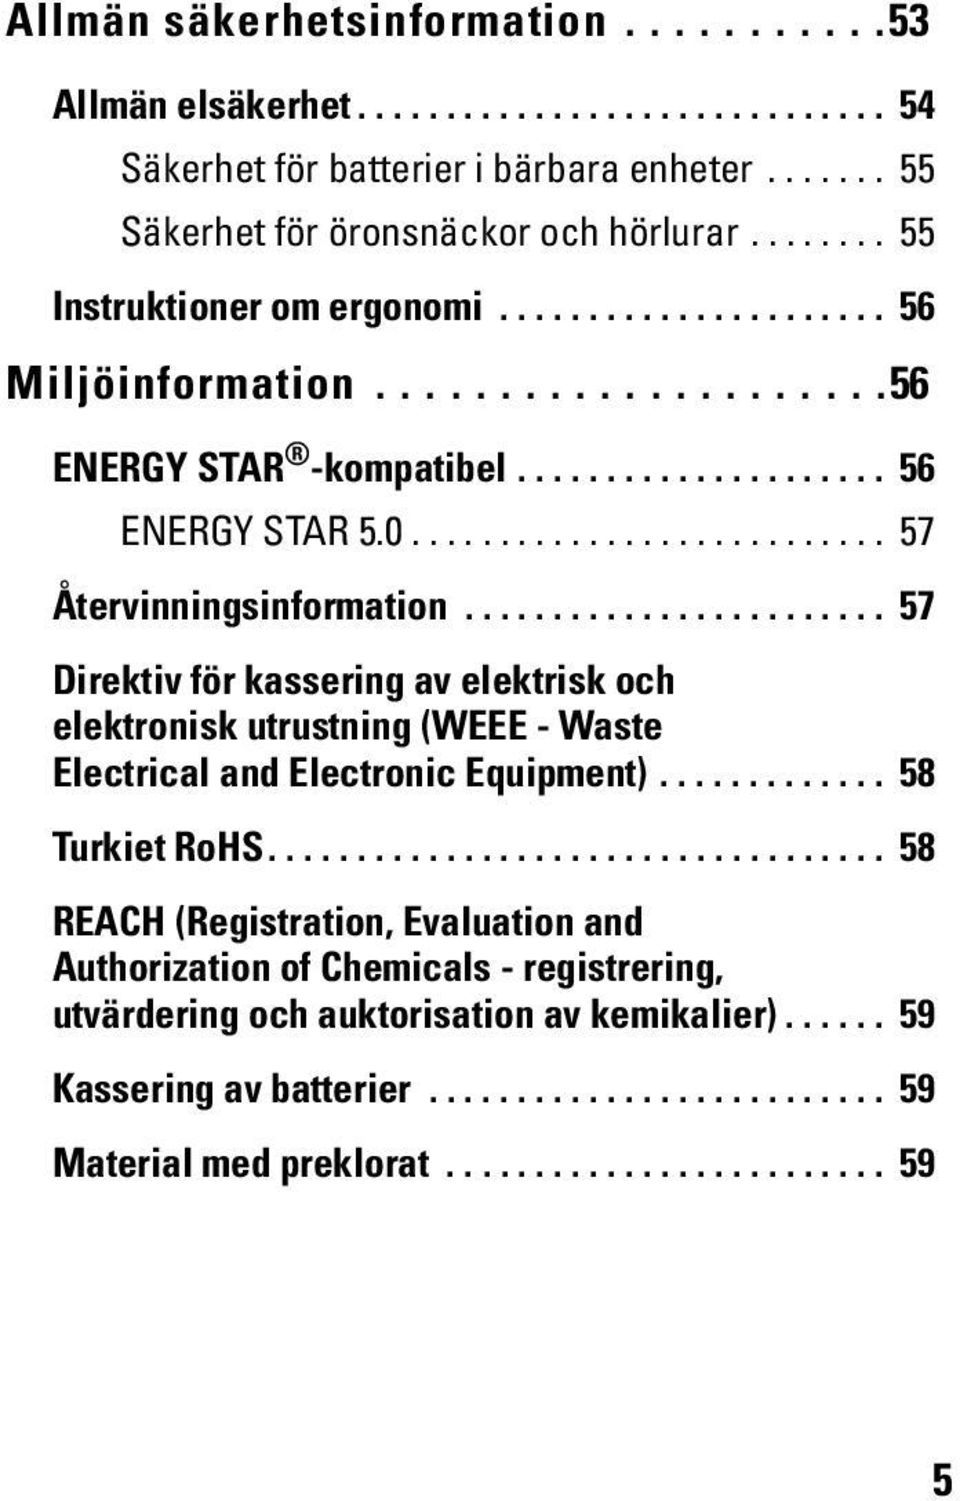 ....................... 57 Direktiv för kassering av elektrisk och elektronisk utrustning (WEEE - Waste Electrical and Electronic Equipment)............. 58 Turkiet RoHS.